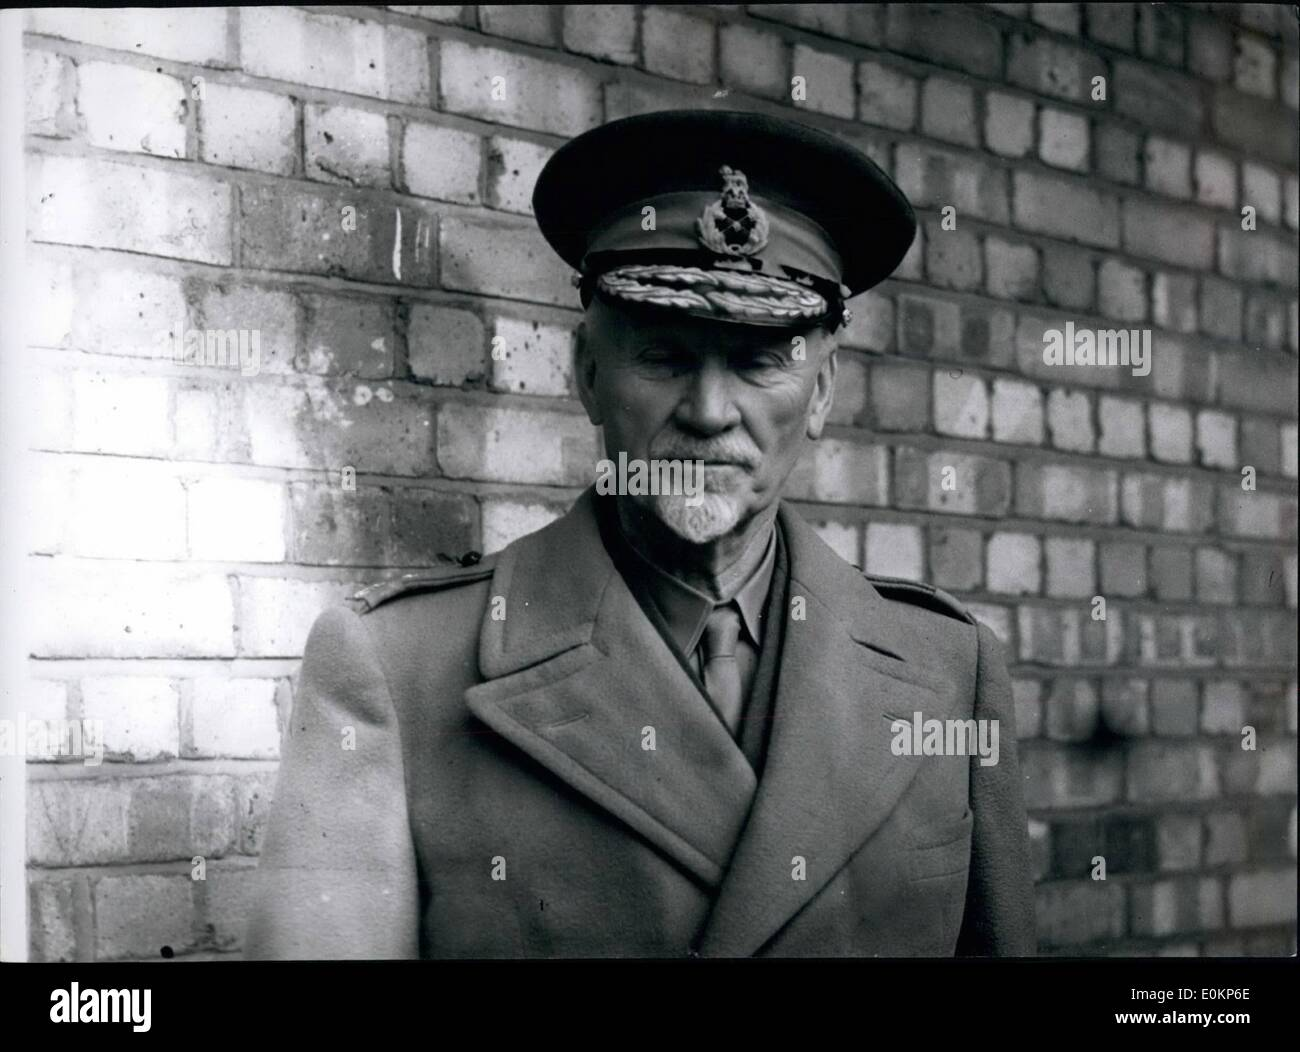 Oct. 10, 1942 - General Smuts Arriving at Dorchester Hotel. - Stock Image